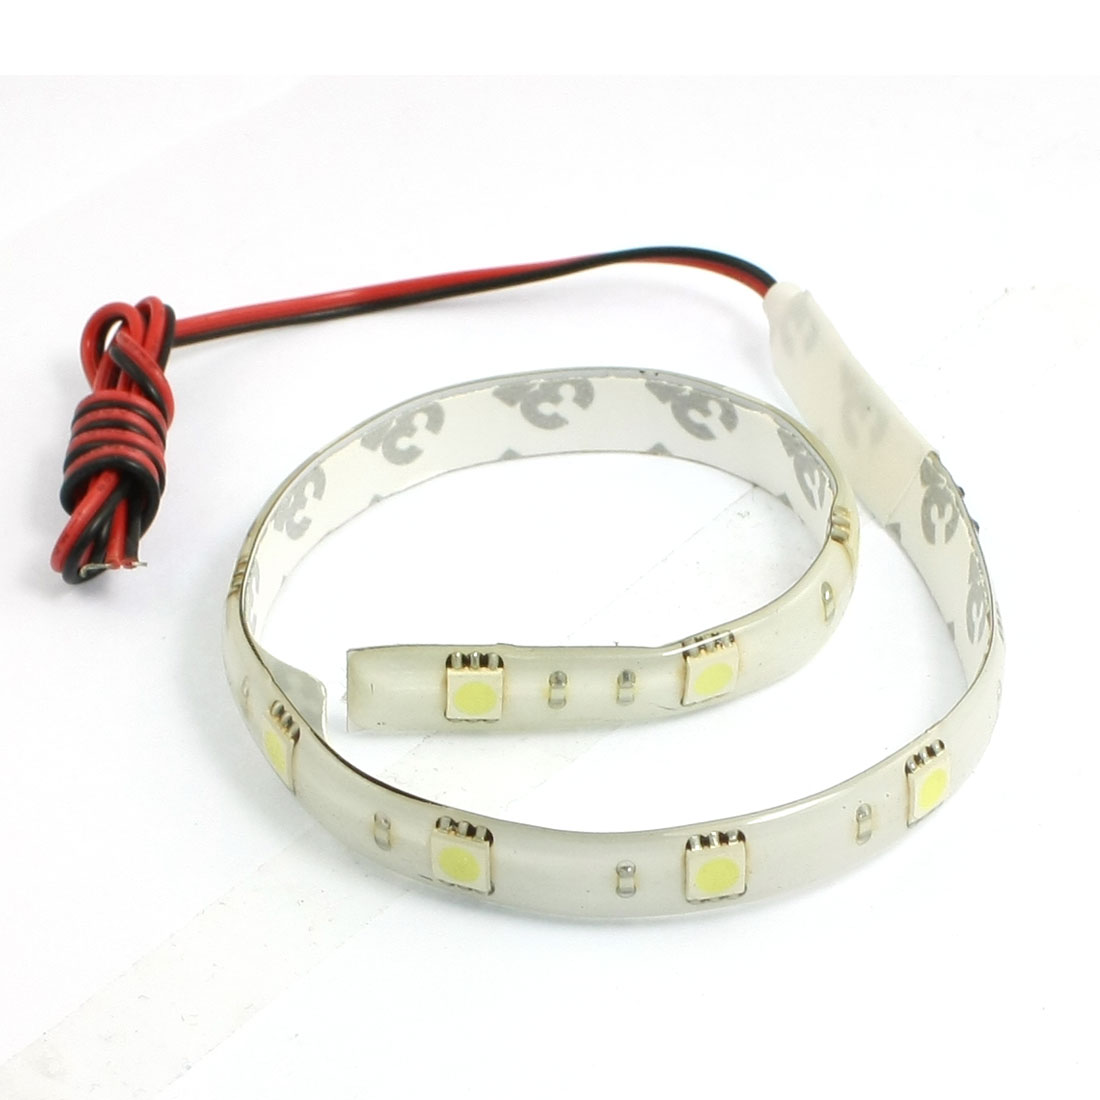 "DC 12V 30cm 12"" White 5050 SMD 12-LED Flexible Strip Light Lamp"